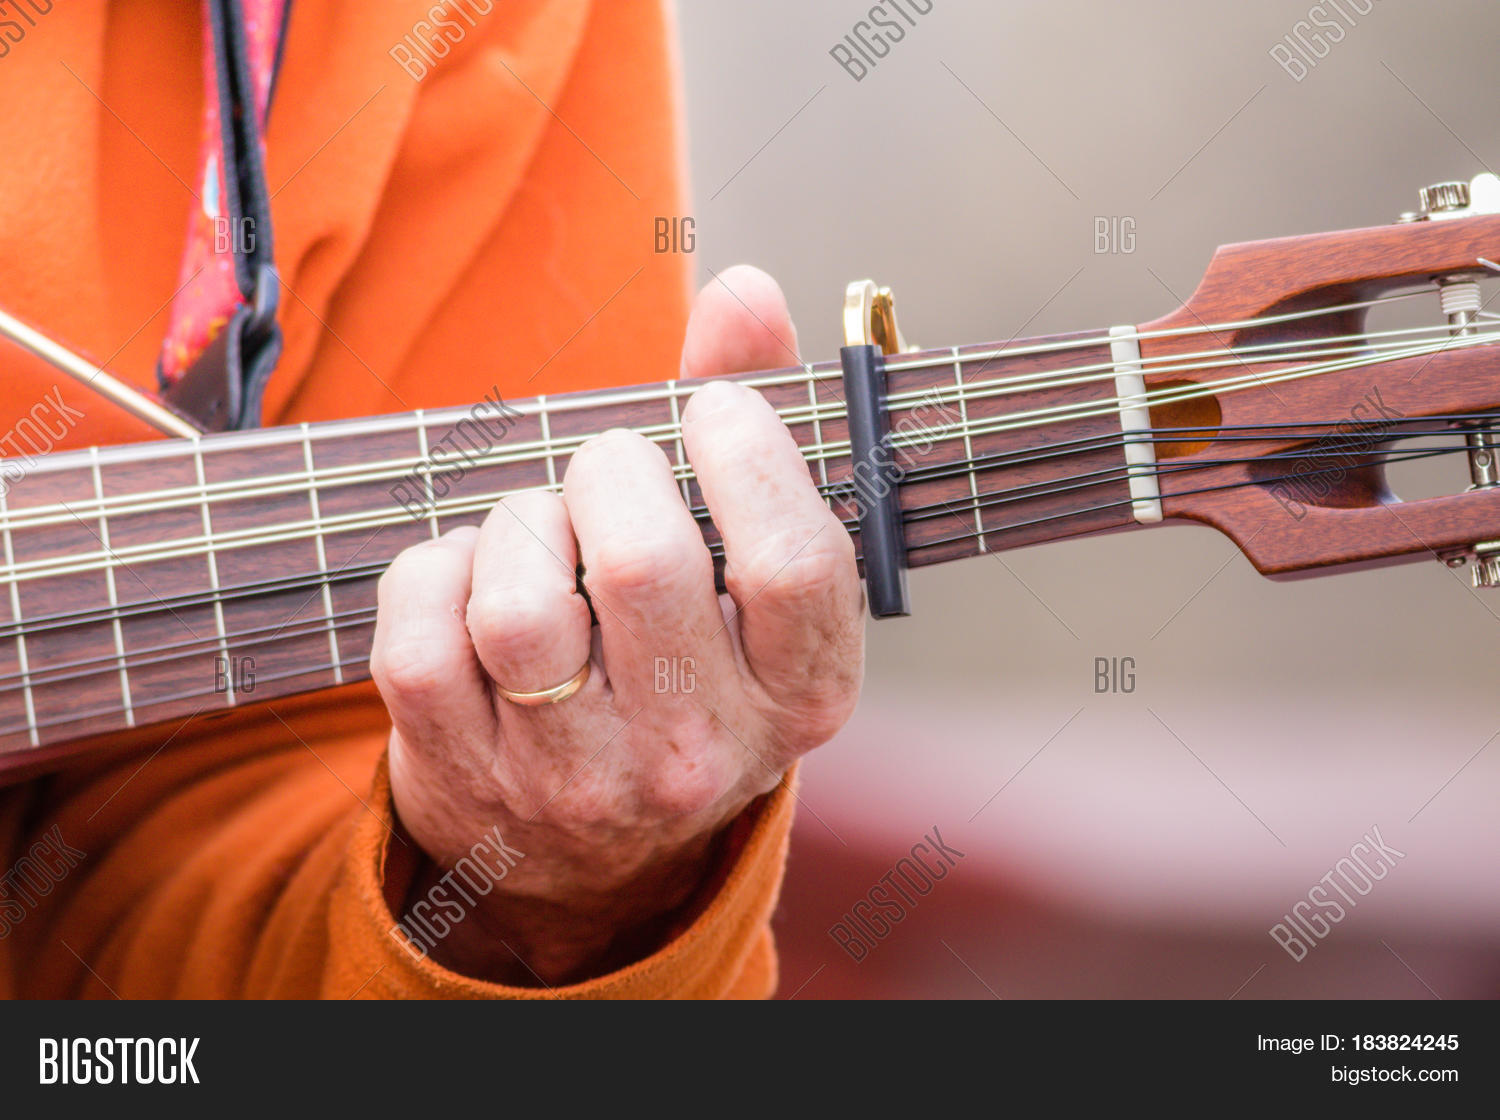 Playing Chord On Image Photo Free Trial Bigstock